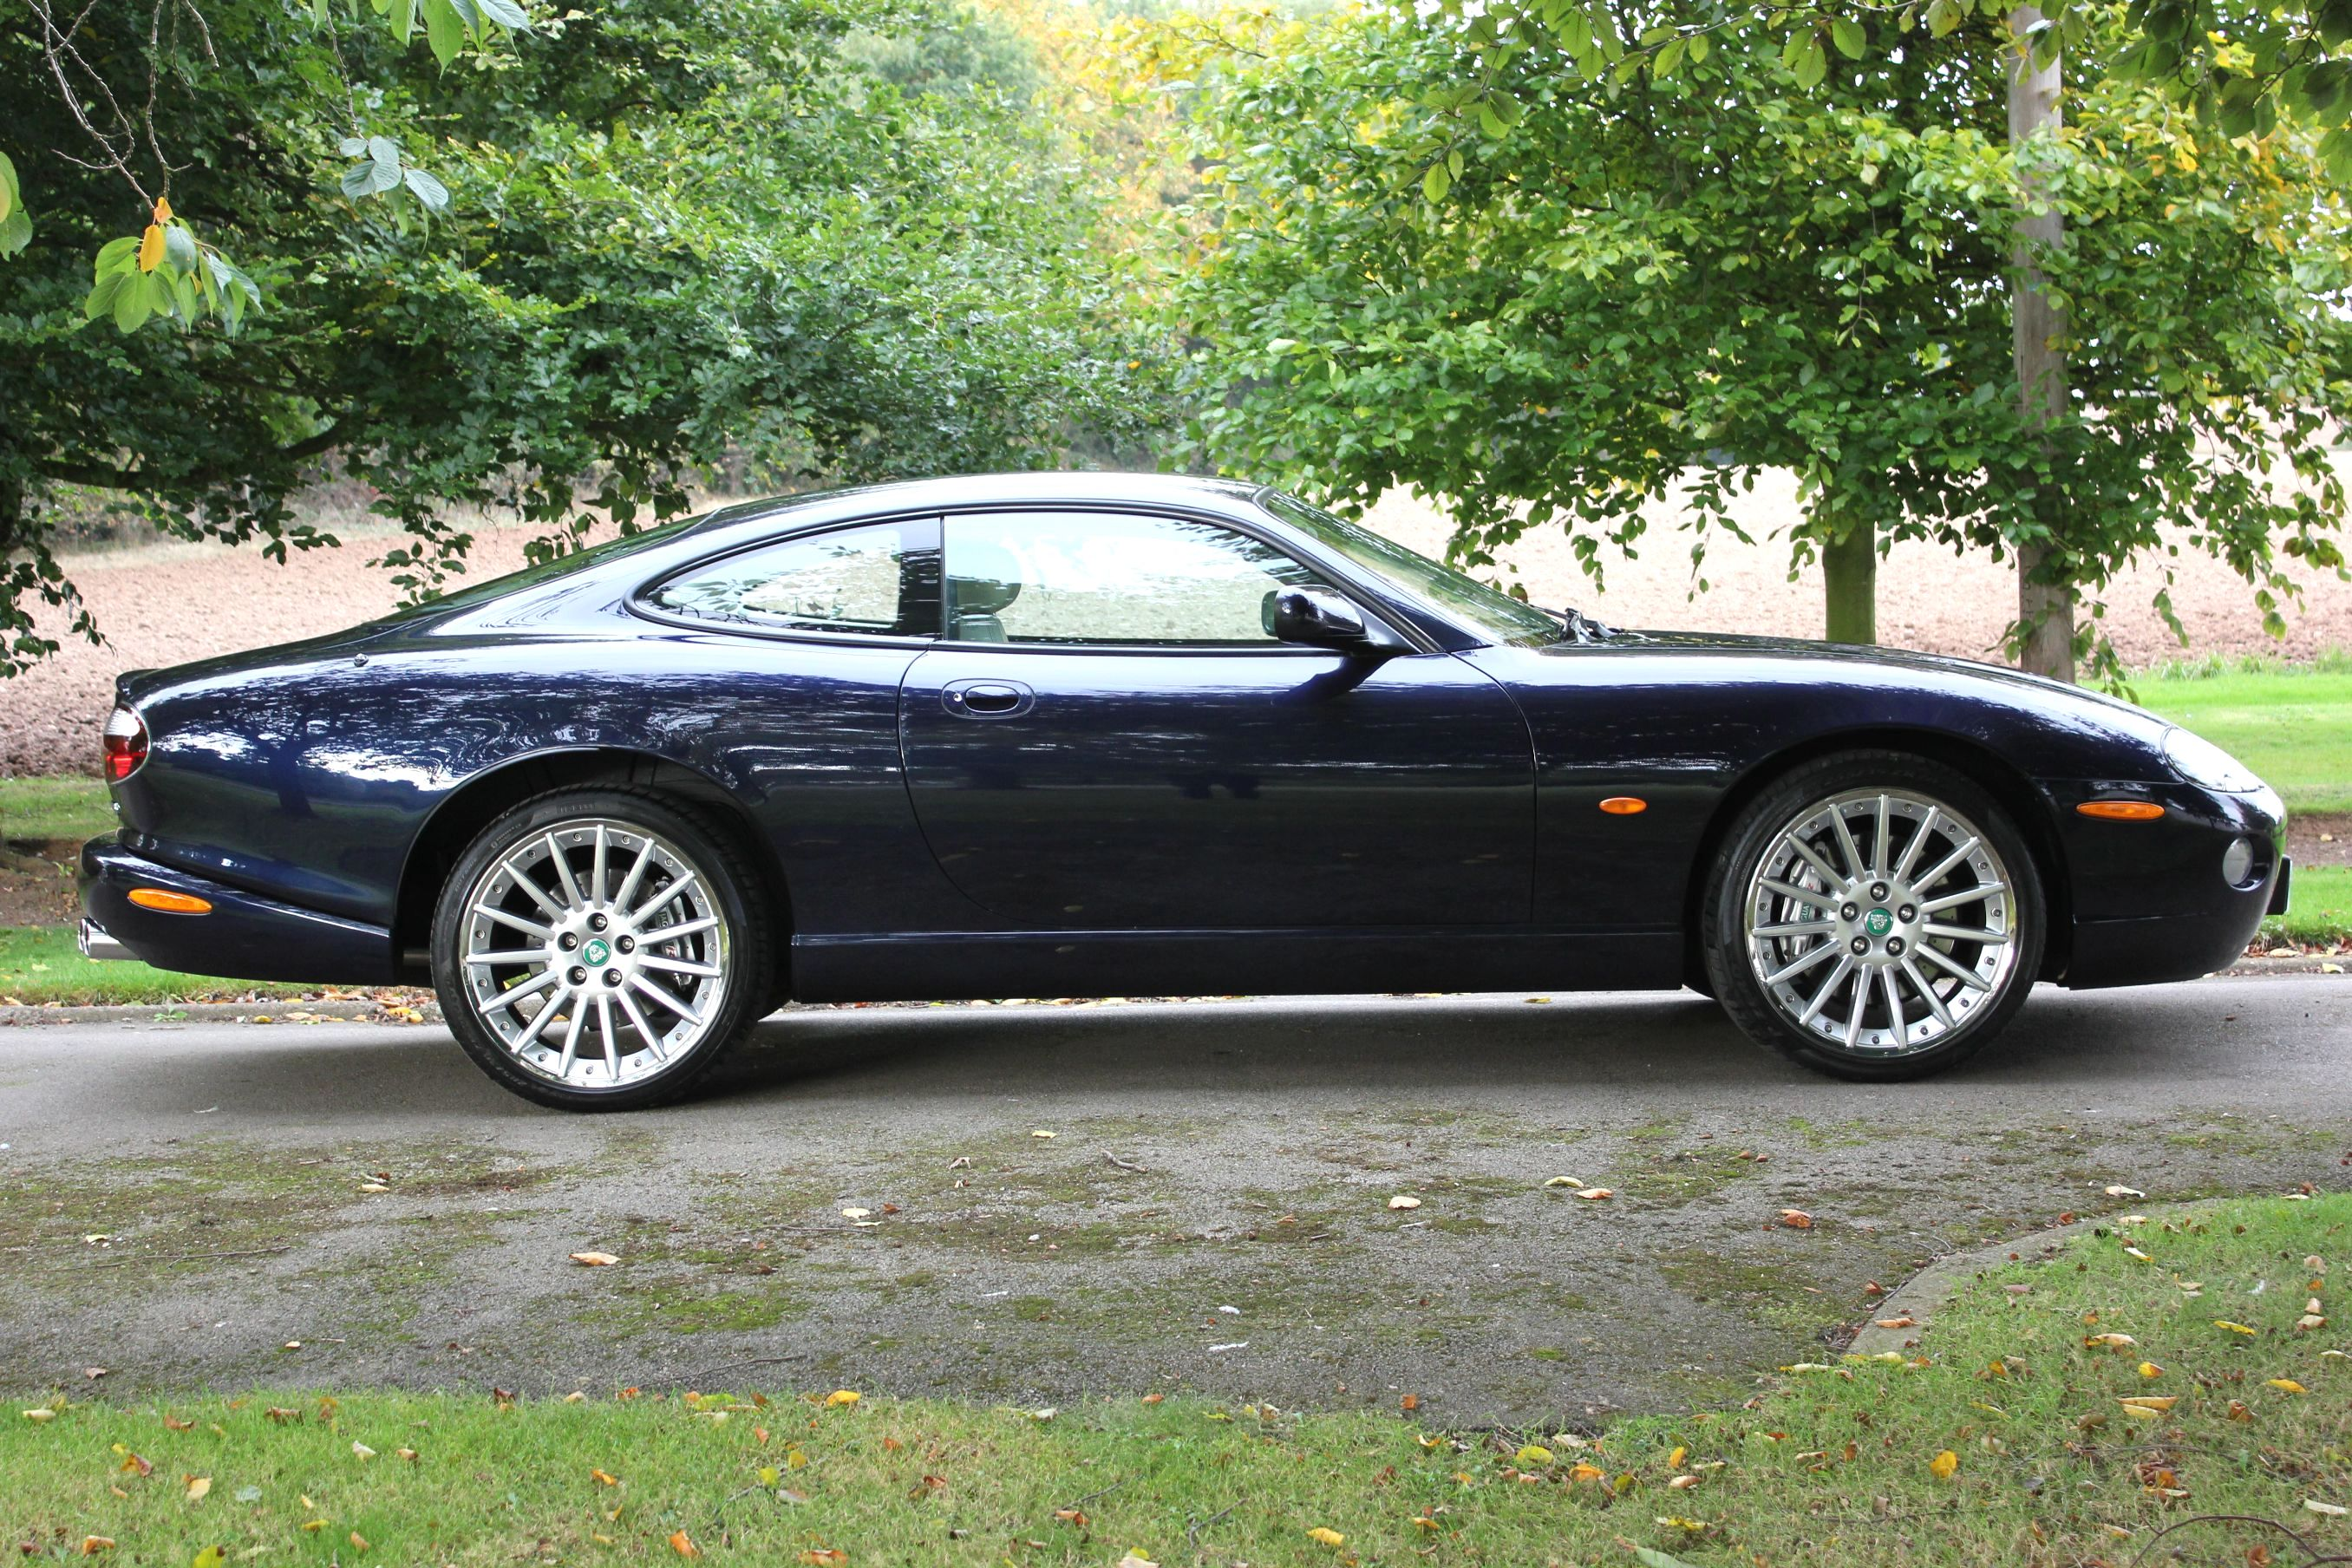 jaguar xk8 4 2s coupe the last cars off the production line shmoo automotive shmoo automotive. Black Bedroom Furniture Sets. Home Design Ideas